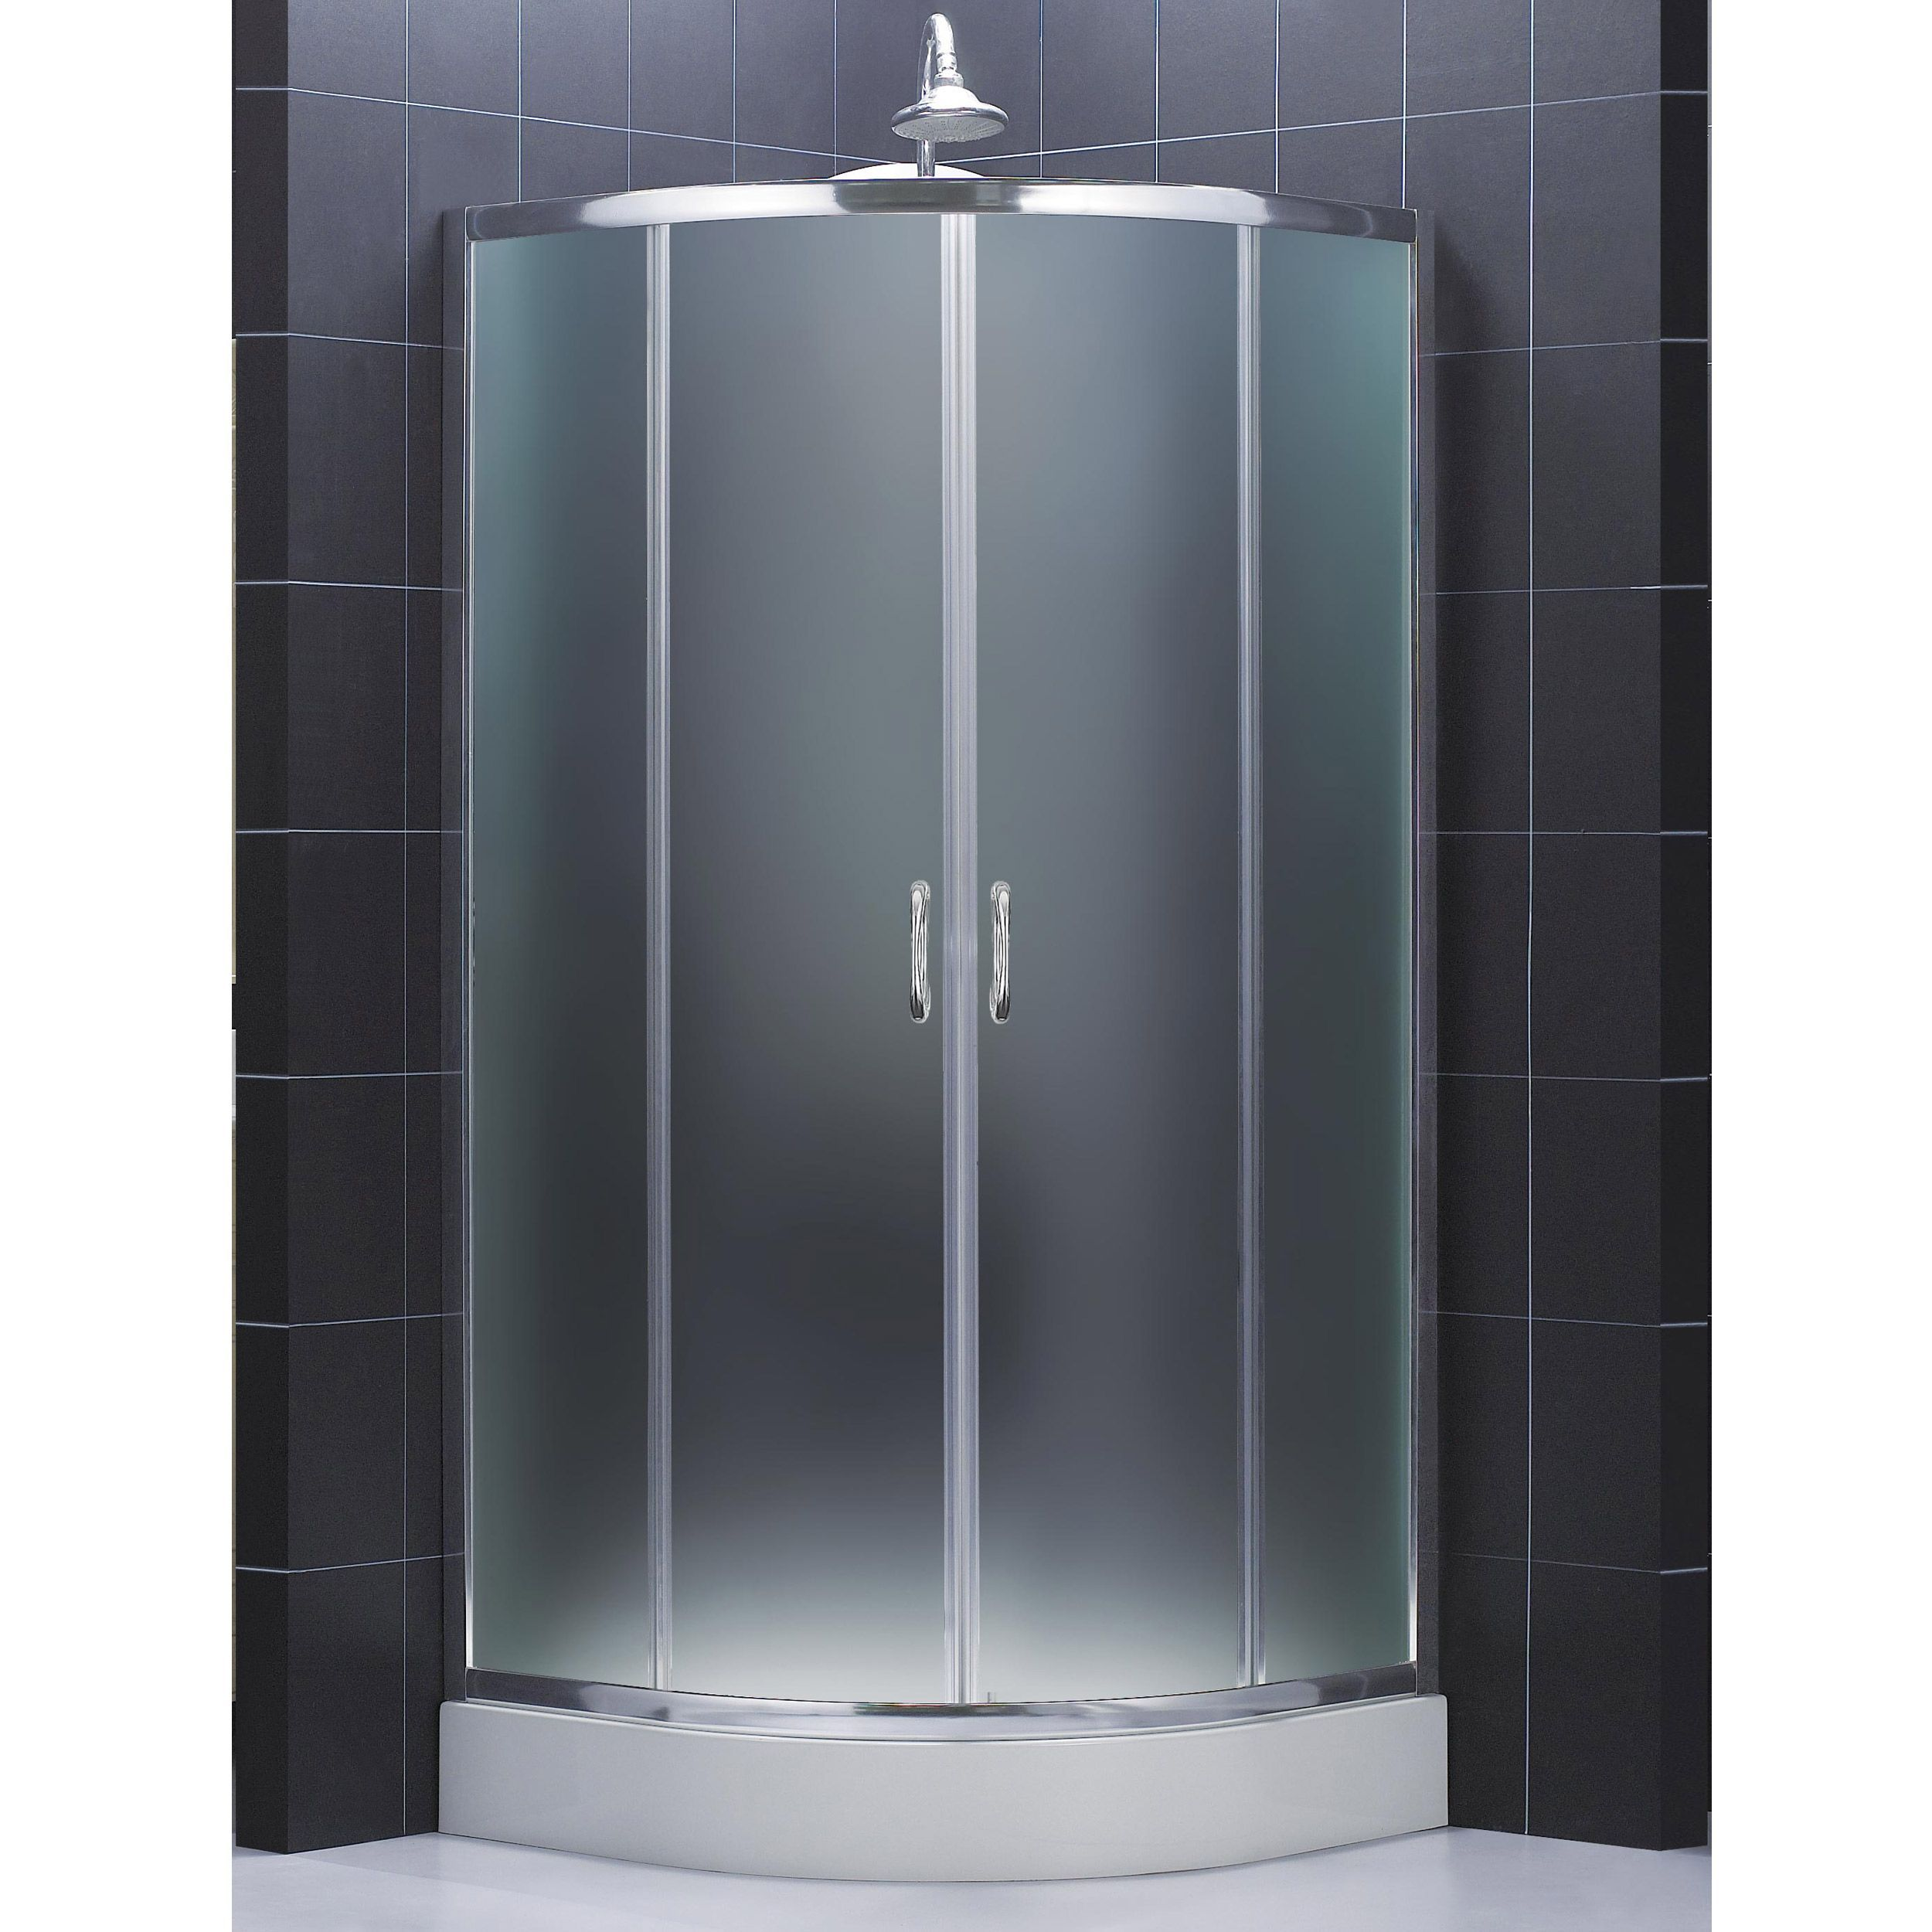 DreamLine shower kits provide a complete solution to makeover a ...